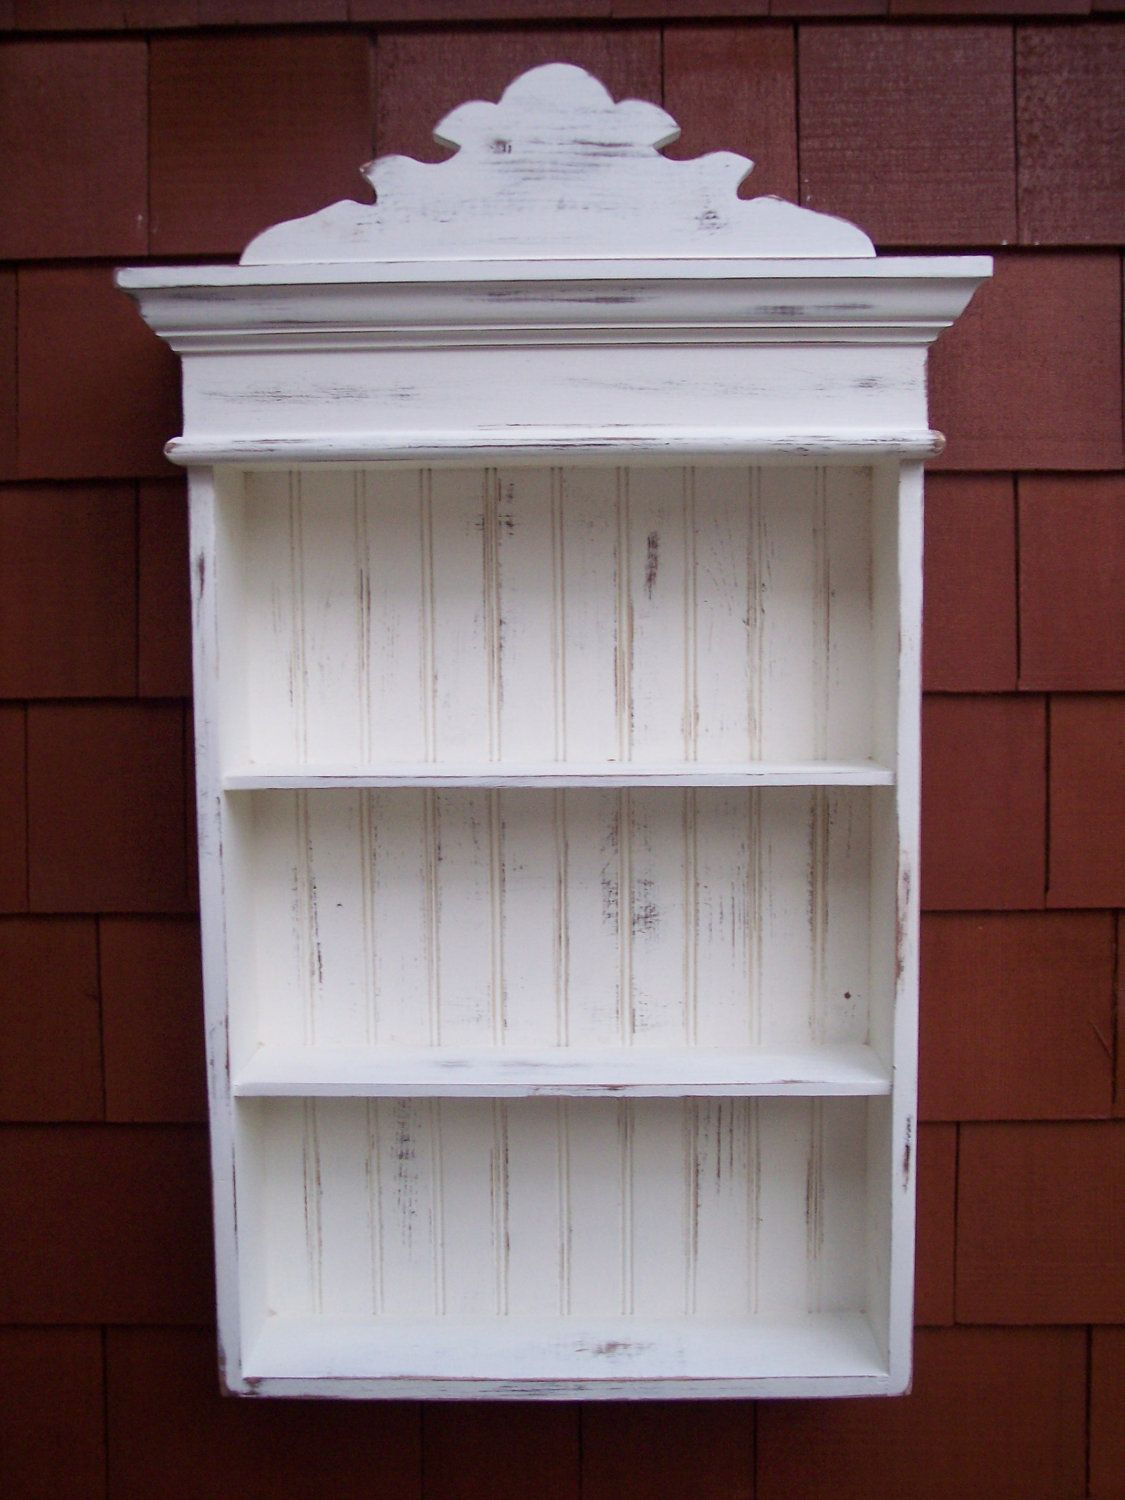 Wooden bathroom cabinet - Distressed White Cabinet Bathroom Cabinet Kitchen Cabinet Hanging Wall Cabinet Shabby Chic